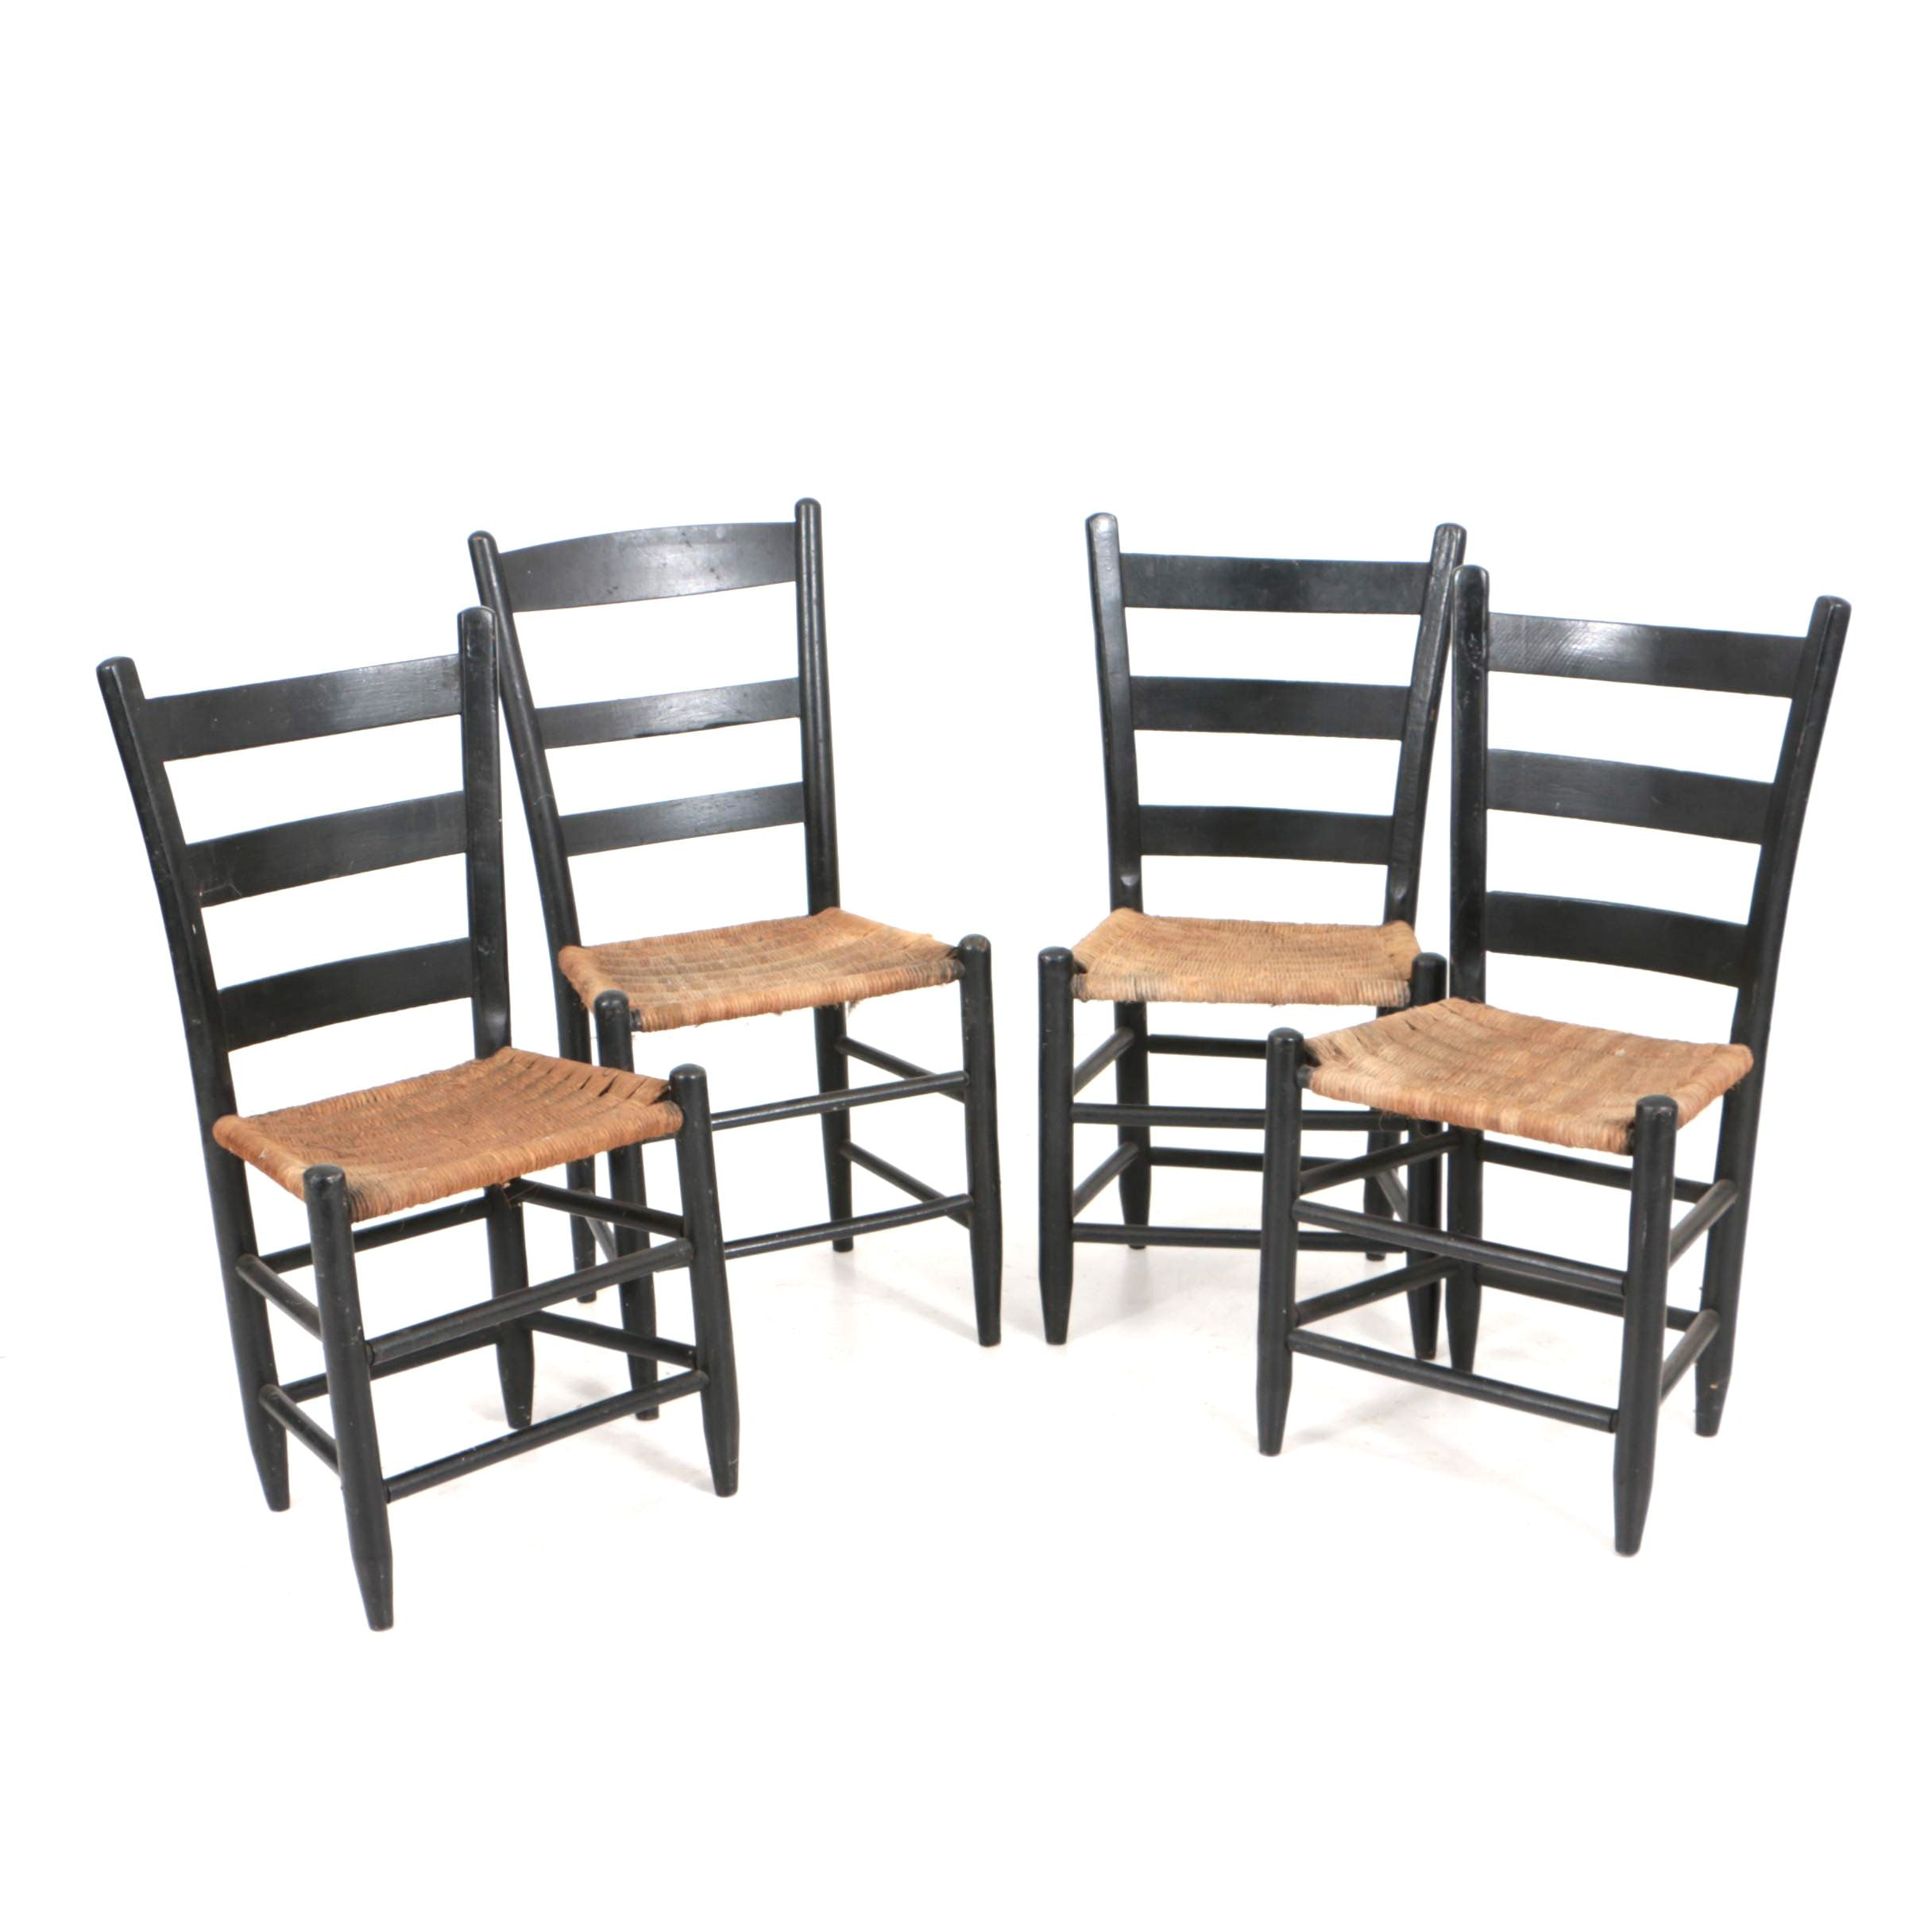 Antique Ladderback Side Chairs in Black Paint